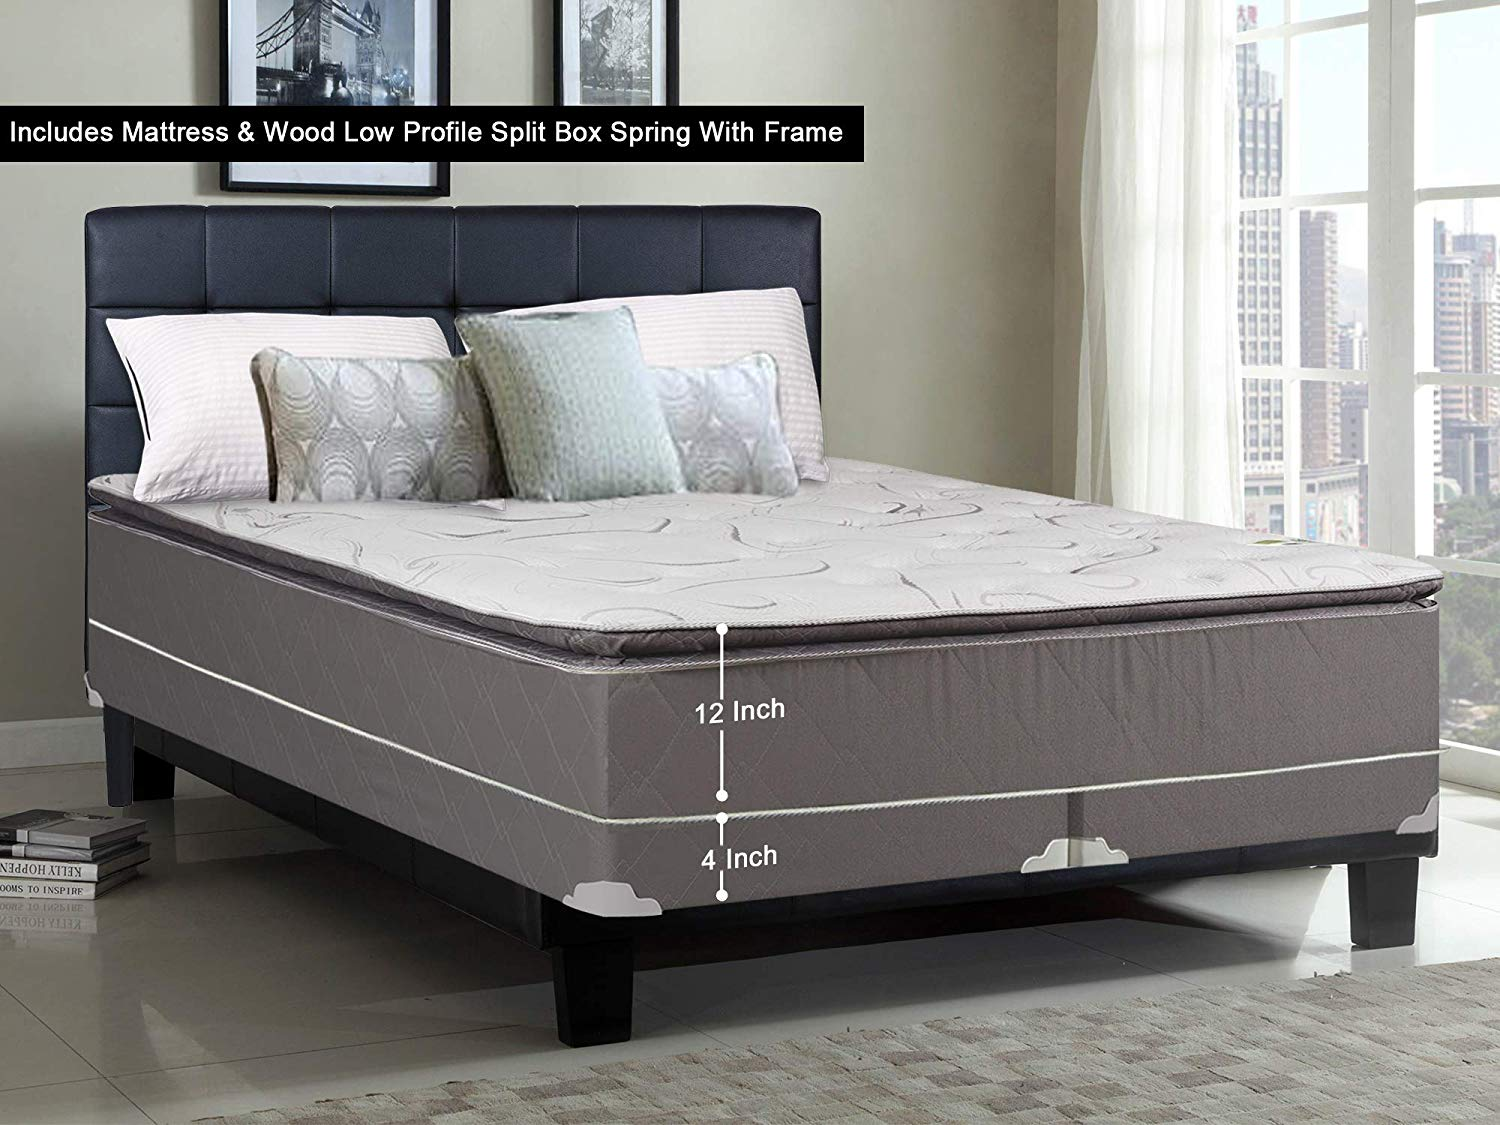 Greaton 9040vF-6/0-2LPS Fully Assembled Soft Pillow Top Innerspring Mattress and 4-inch Split Wood Box Spring/Foundation Set with Frame |California King Size| Mink, Color